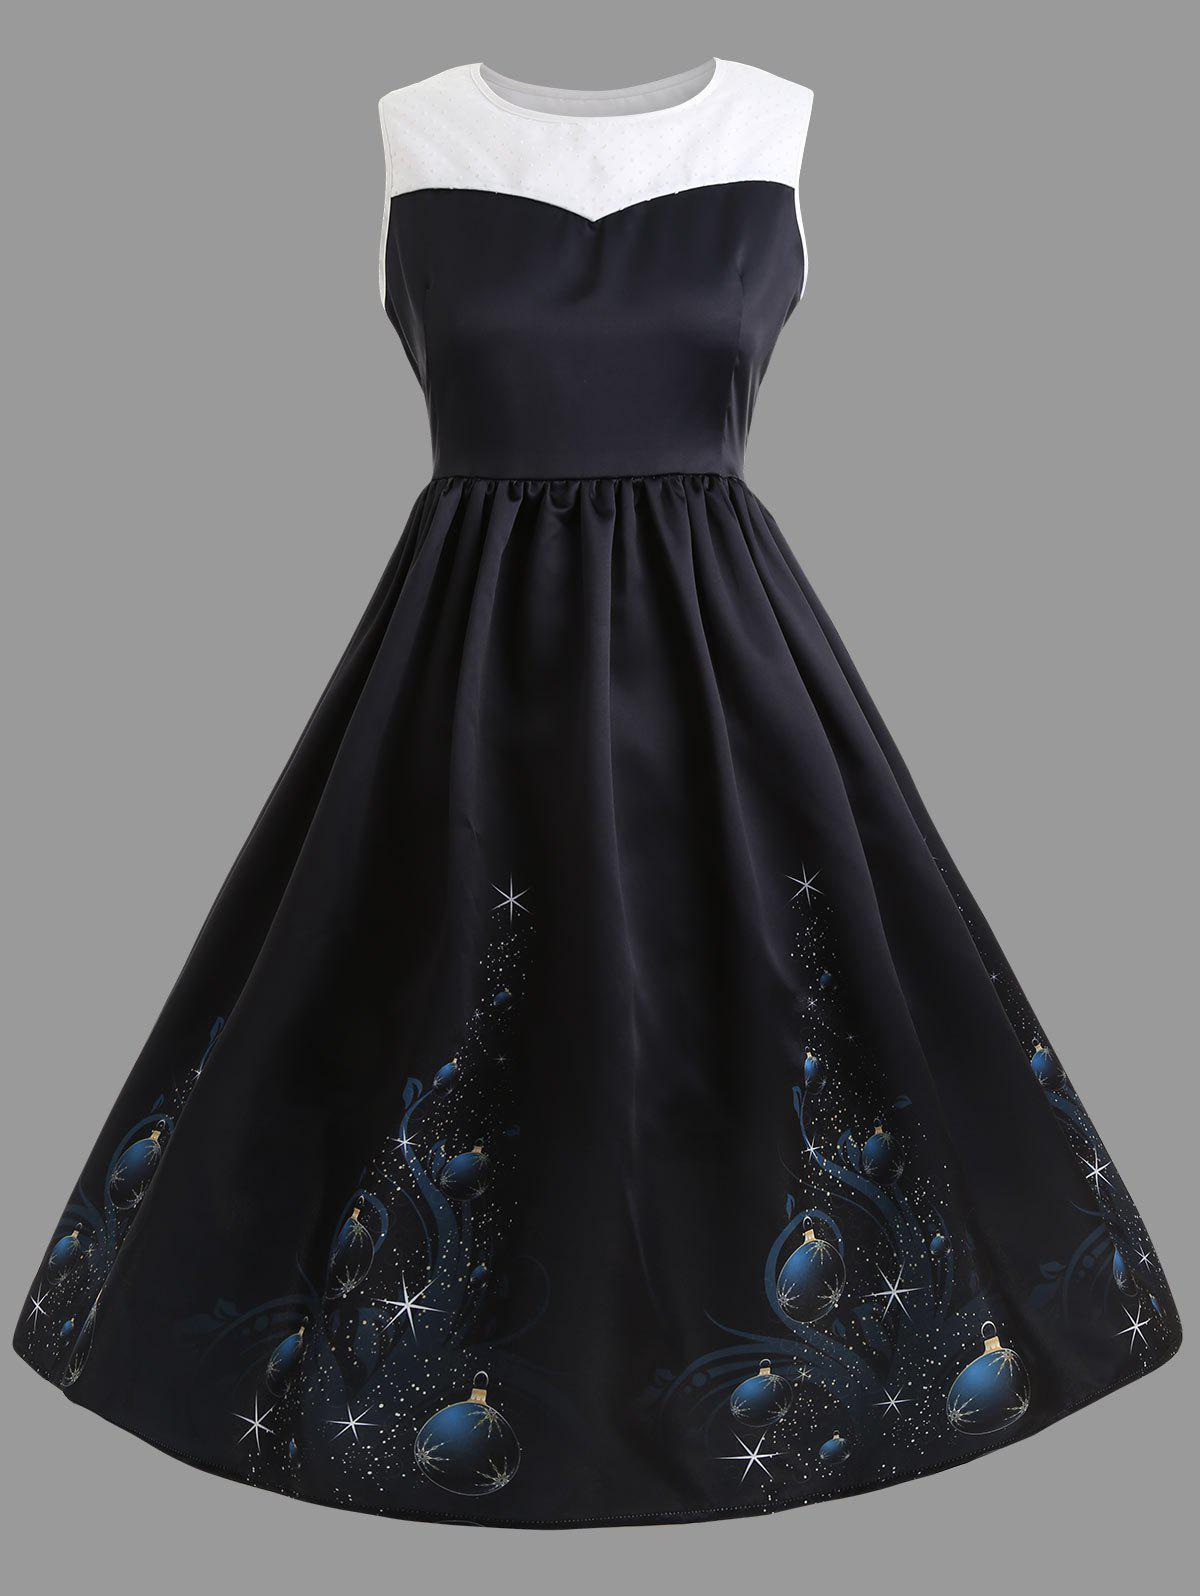 Vintage Plus Size Midi  Christmas Gown DressWOMEN<br><br>Size: 5XL; Color: BLACK; Style: Vintage; Material: Polyester; Silhouette: Ball Gown; Dresses Length: Mid-Calf; Neckline: Round Collar; Sleeve Length: Sleeveless; Waist: High Waisted; Embellishment: Vintage; Pattern Type: Print; With Belt: No; Season: Fall,Winter; Weight: 0.5900kg; Package Contents: 1 x Dress;